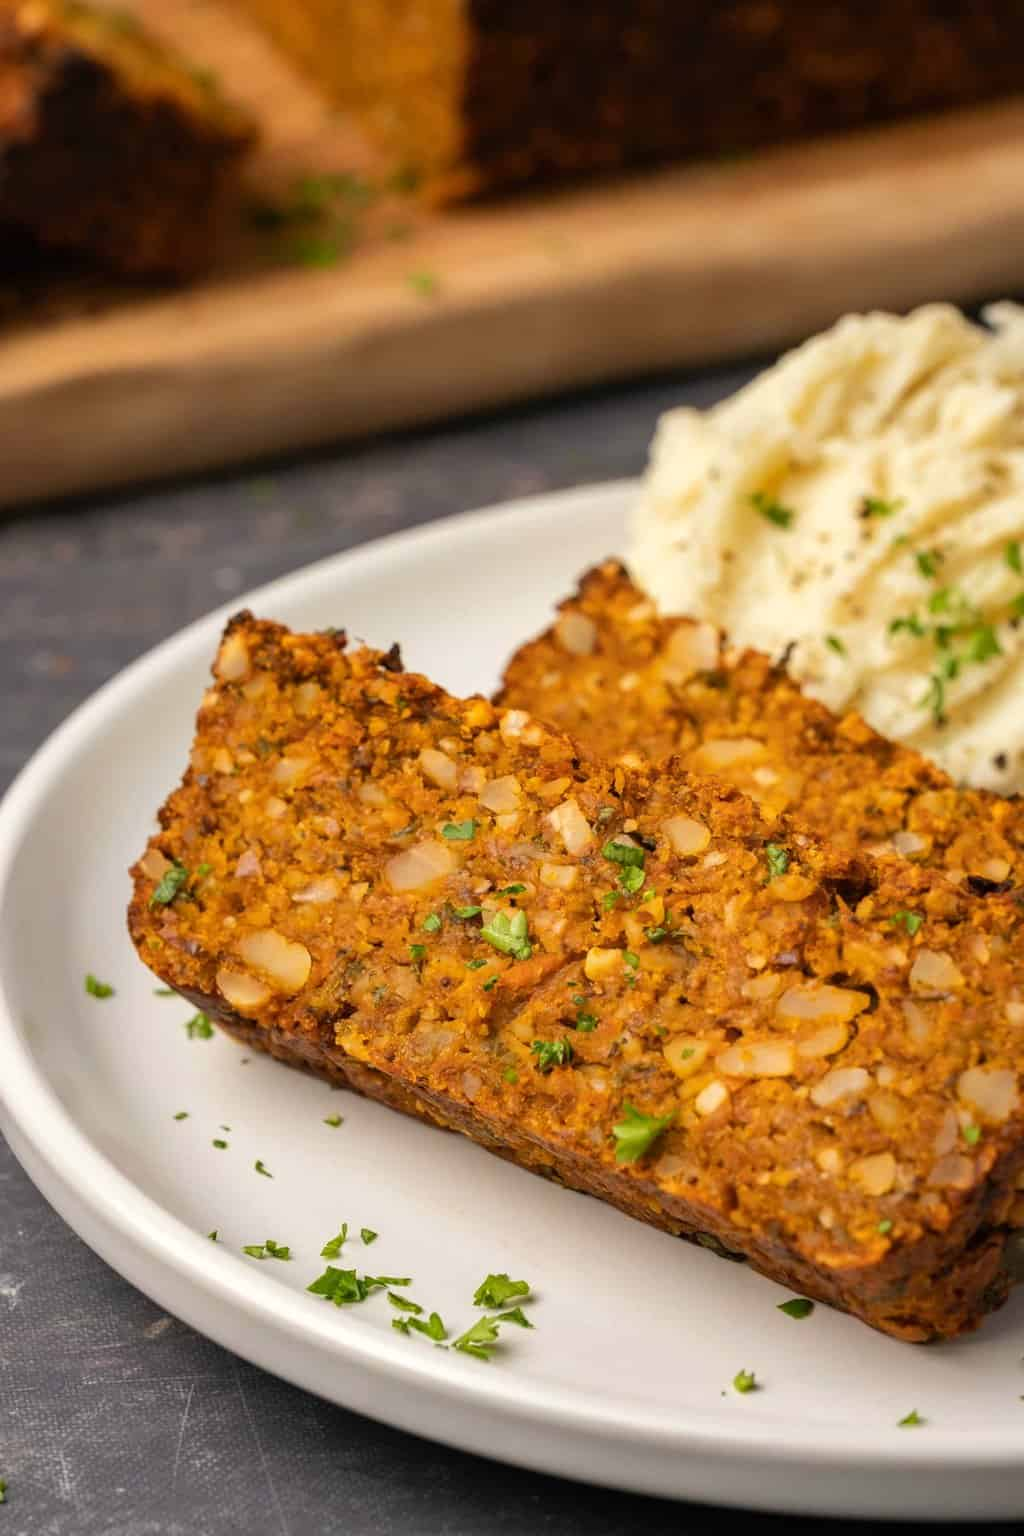 Slices of nut roast on a white plate.